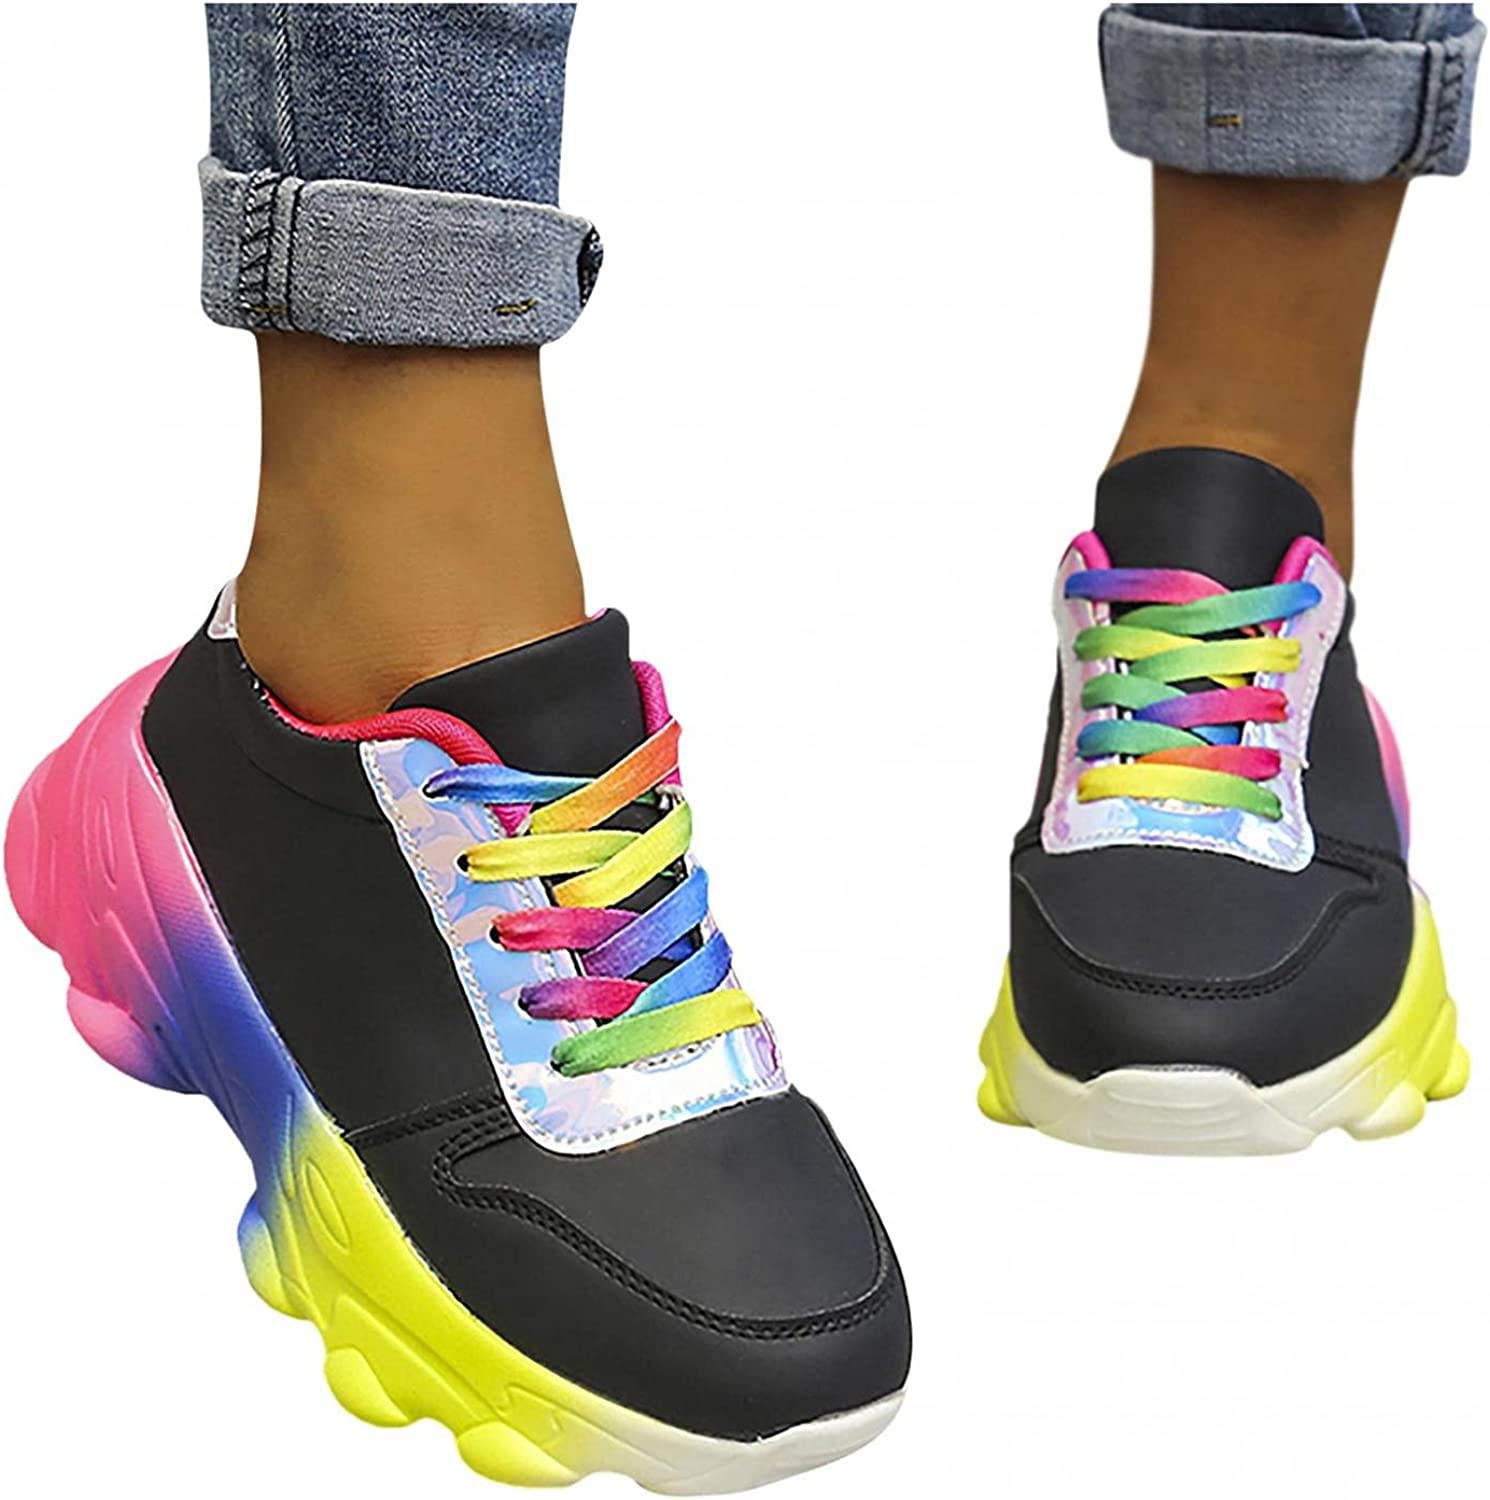 Hbeylia Platform Fashion Sneakers For Women Casual Gradient Colorful Lace Up Chunky Bottom Heels Low Top Walking Shoes Lightweight Comfort Athletic Running Hiking Tennis Skateboard Sport Sneakers